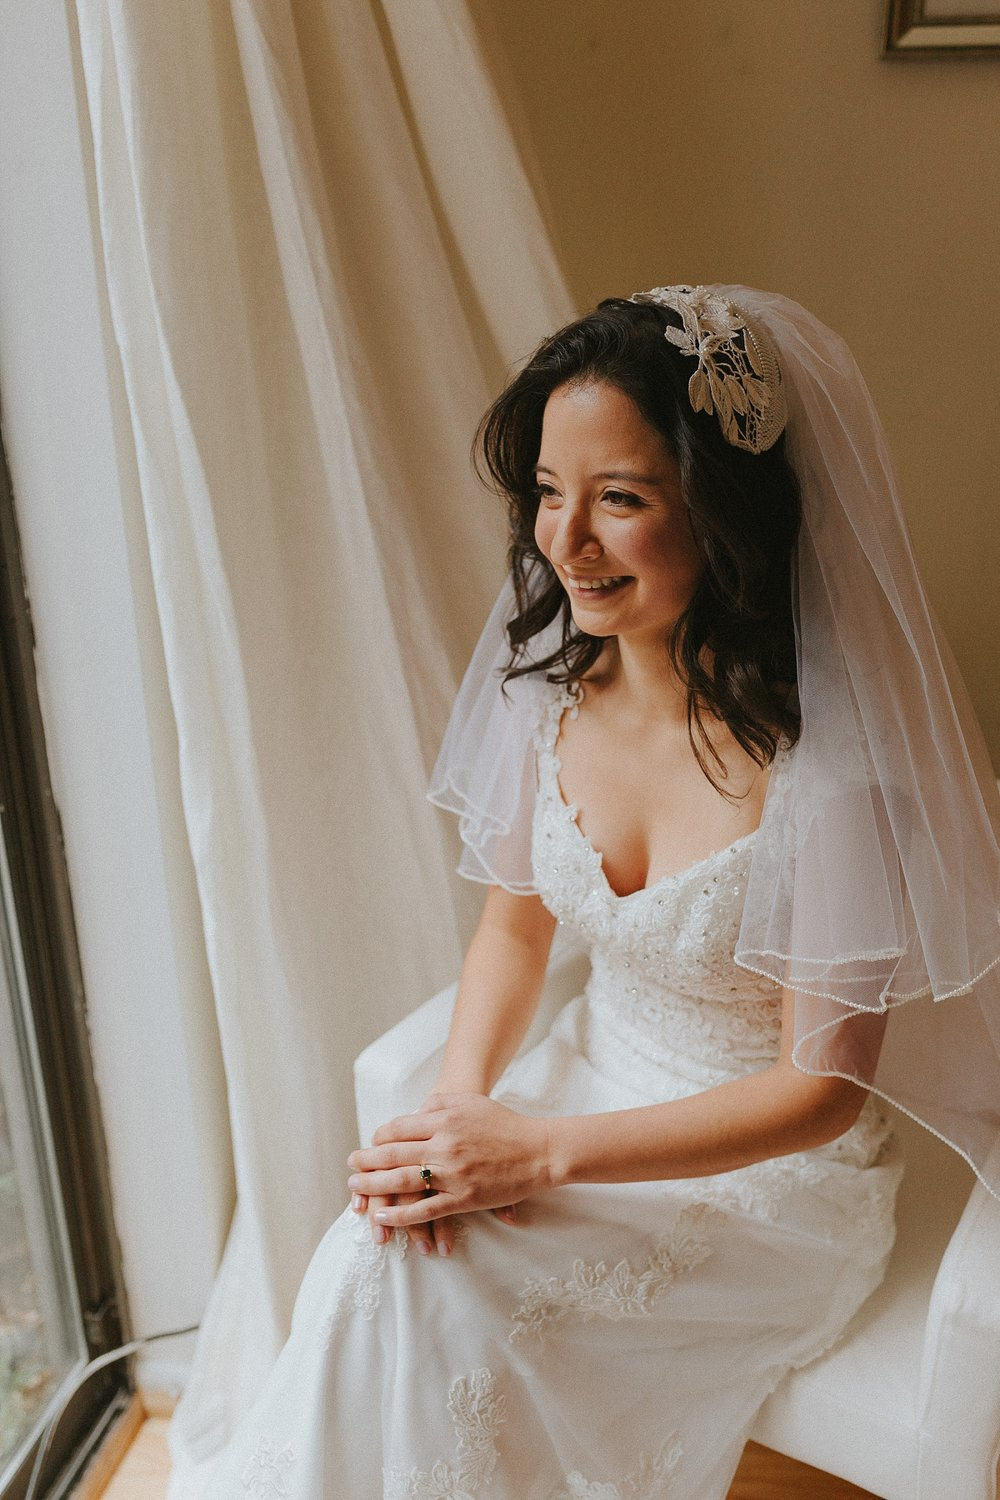 Bridal Portraits for wedding in Philadelphia Pennsylvania at Old St. Mary's Church and Building BOK